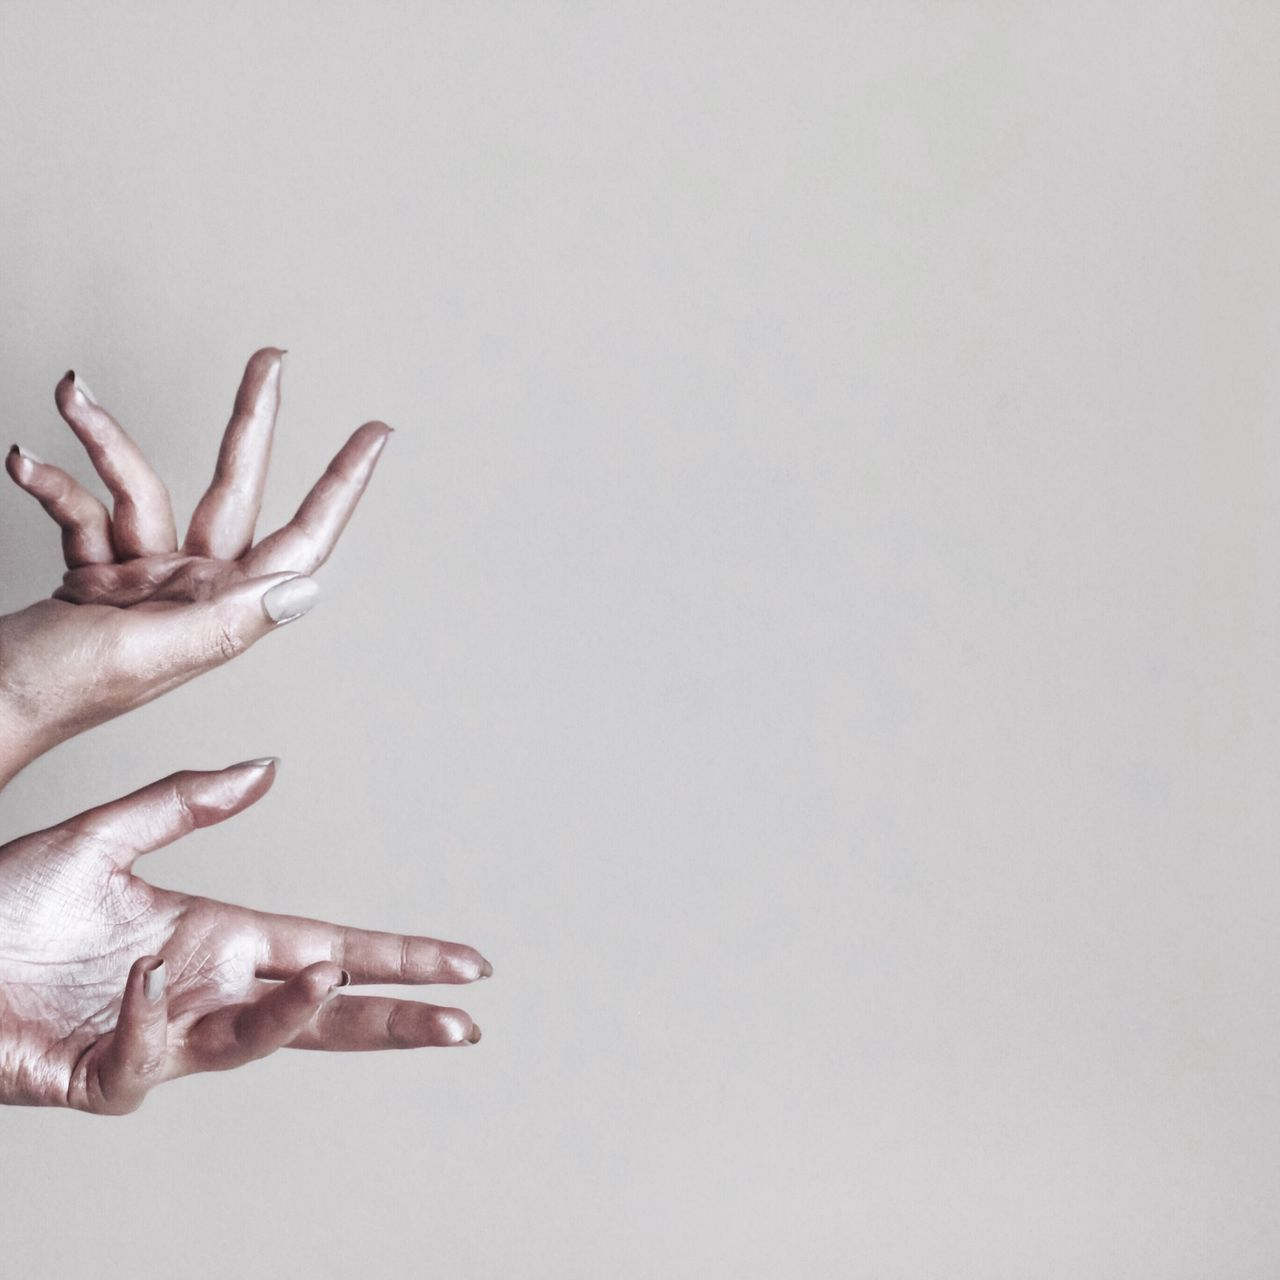 human hand, human body part, human finger, studio shot, palm, indoors, one person, close-up, people, day